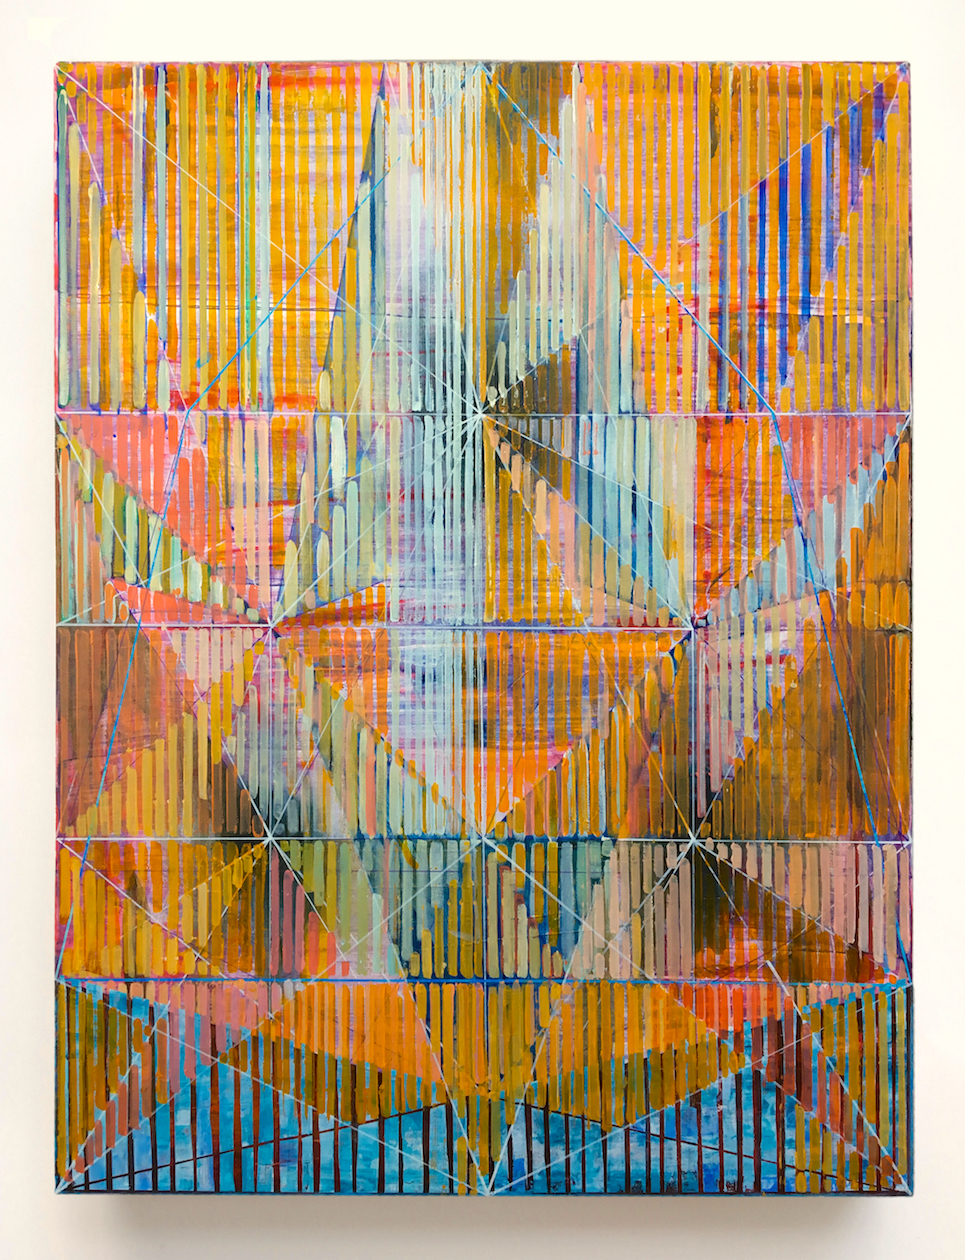 Joe Lloyd, Orange Offset Pattern, 2017, acrylic on canvas, 48 x 36 inches